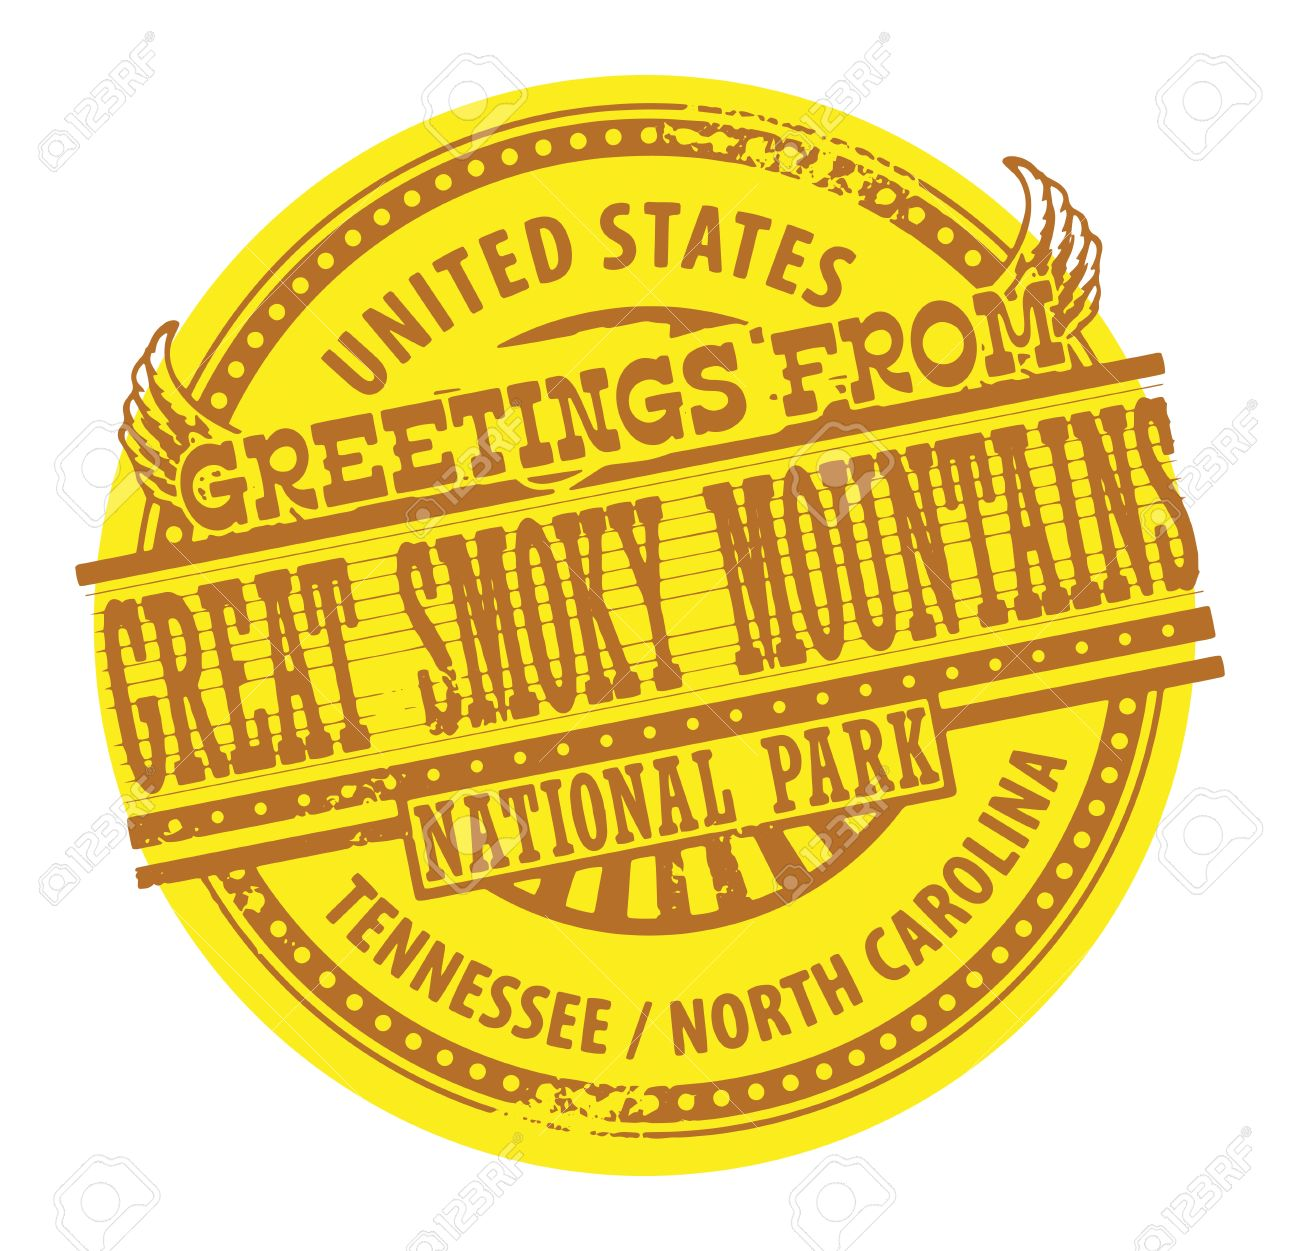 169 Smoky Mountains Stock Vector Illustration And Royalty Free.